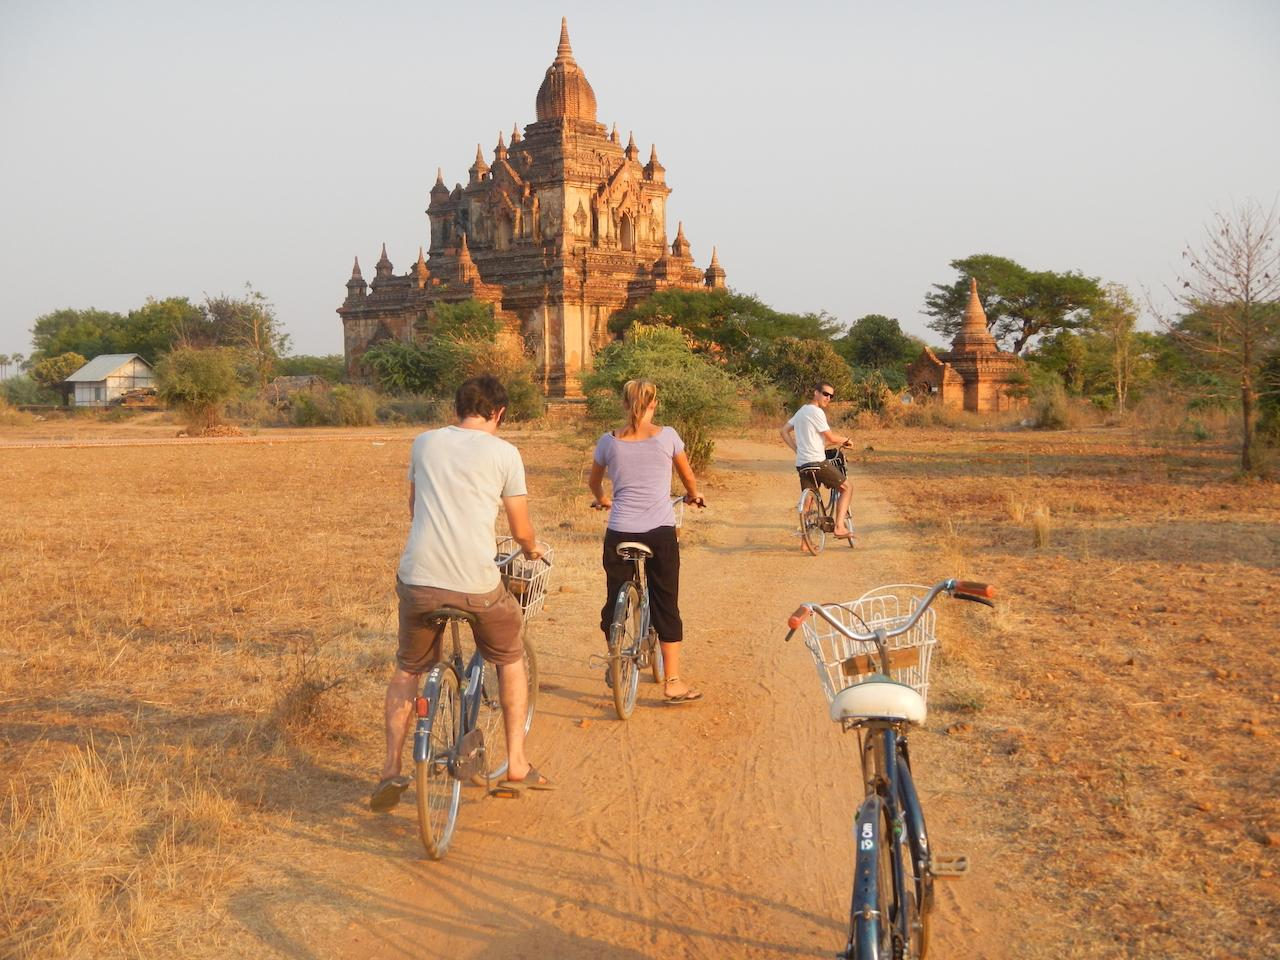 Tourists feel excited when cycling to explore Bagan